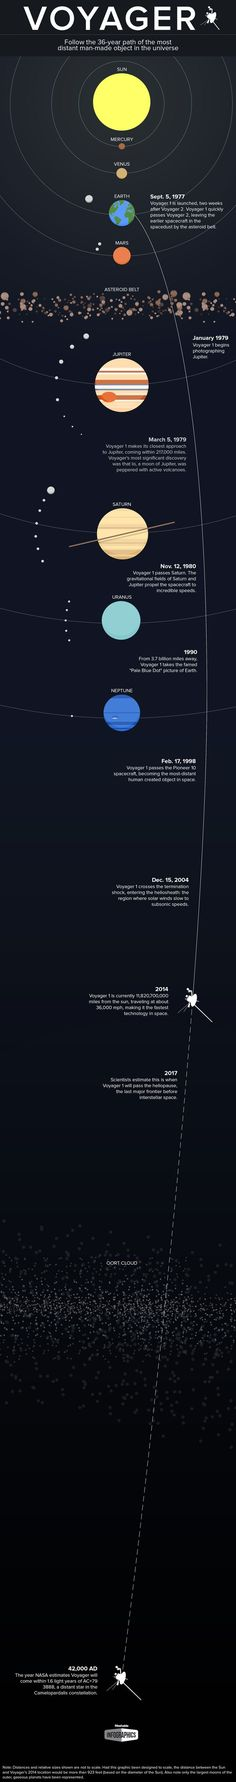 Voyager 1's 36-year mission. #Astronomy